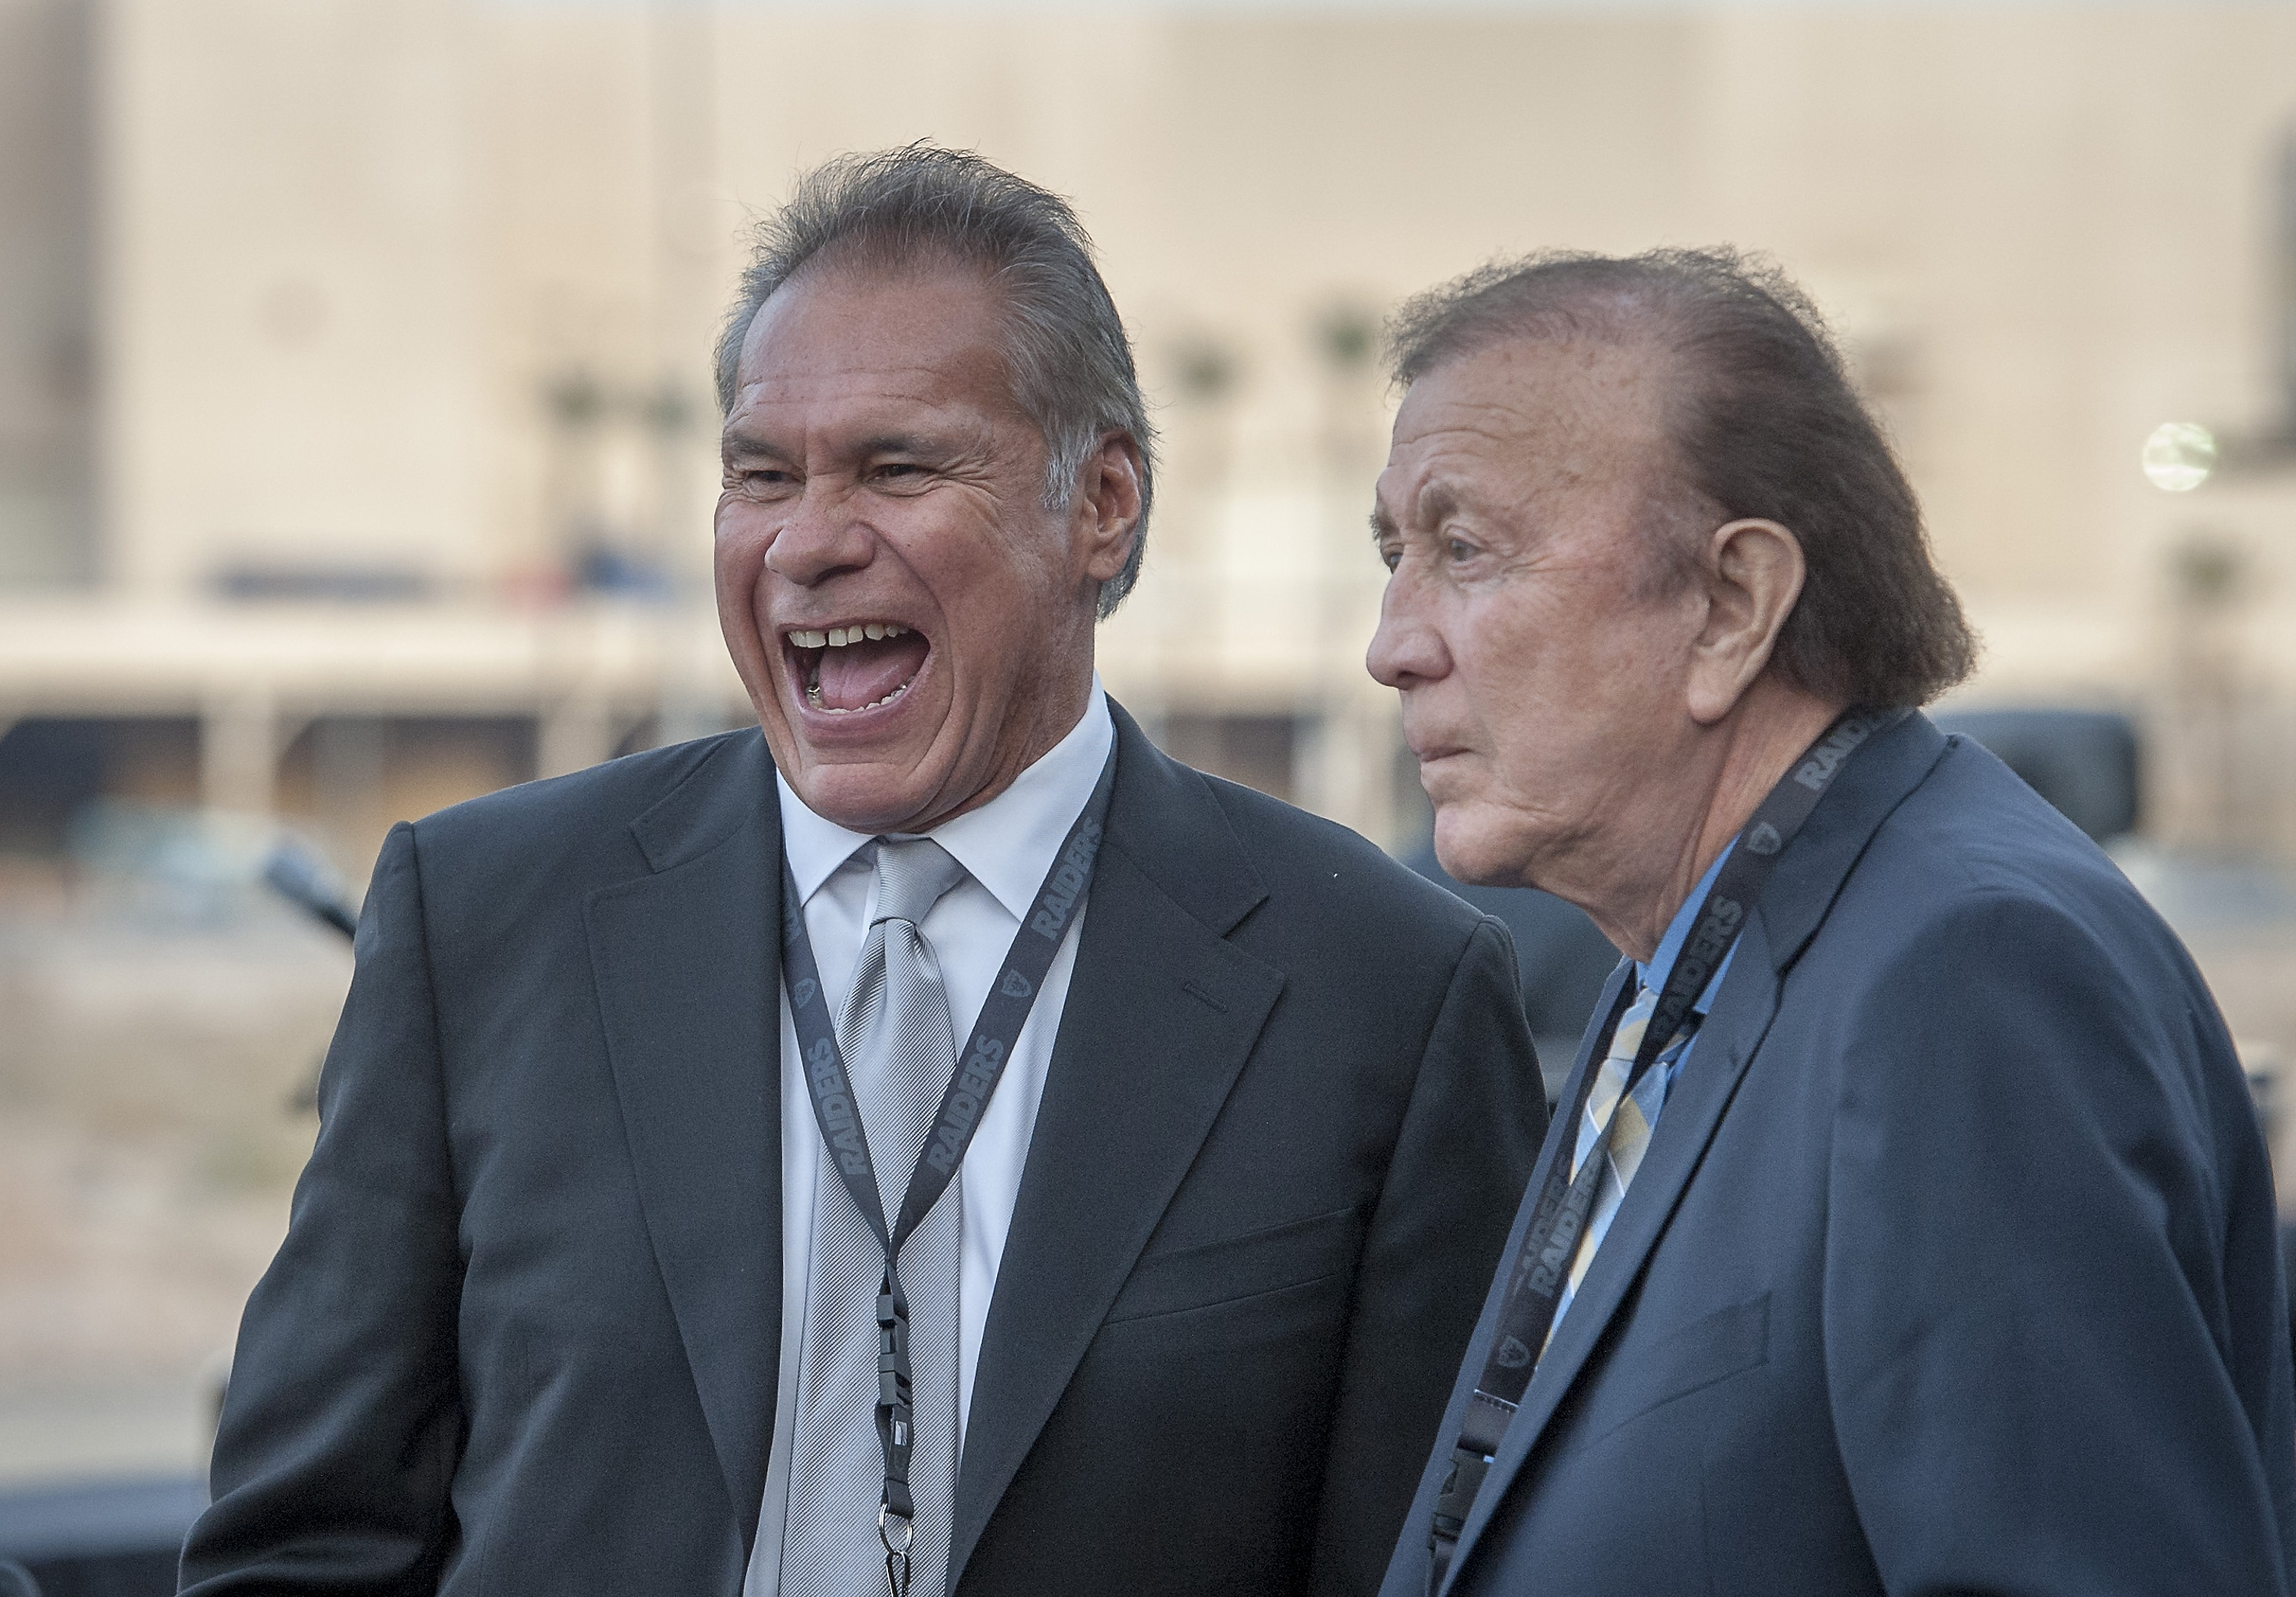 Former Oakland Raiders great Jim Plunkett, left, and coach Art Flores greet friends at the Groundbreaking ceremony for the Raiders Las Vegas Stadium at the Polaris Avenue site in Las Vegas on Monday, Nov. 13, 2017. CREDIT: Mark Damon/Las Vegas News Bureau